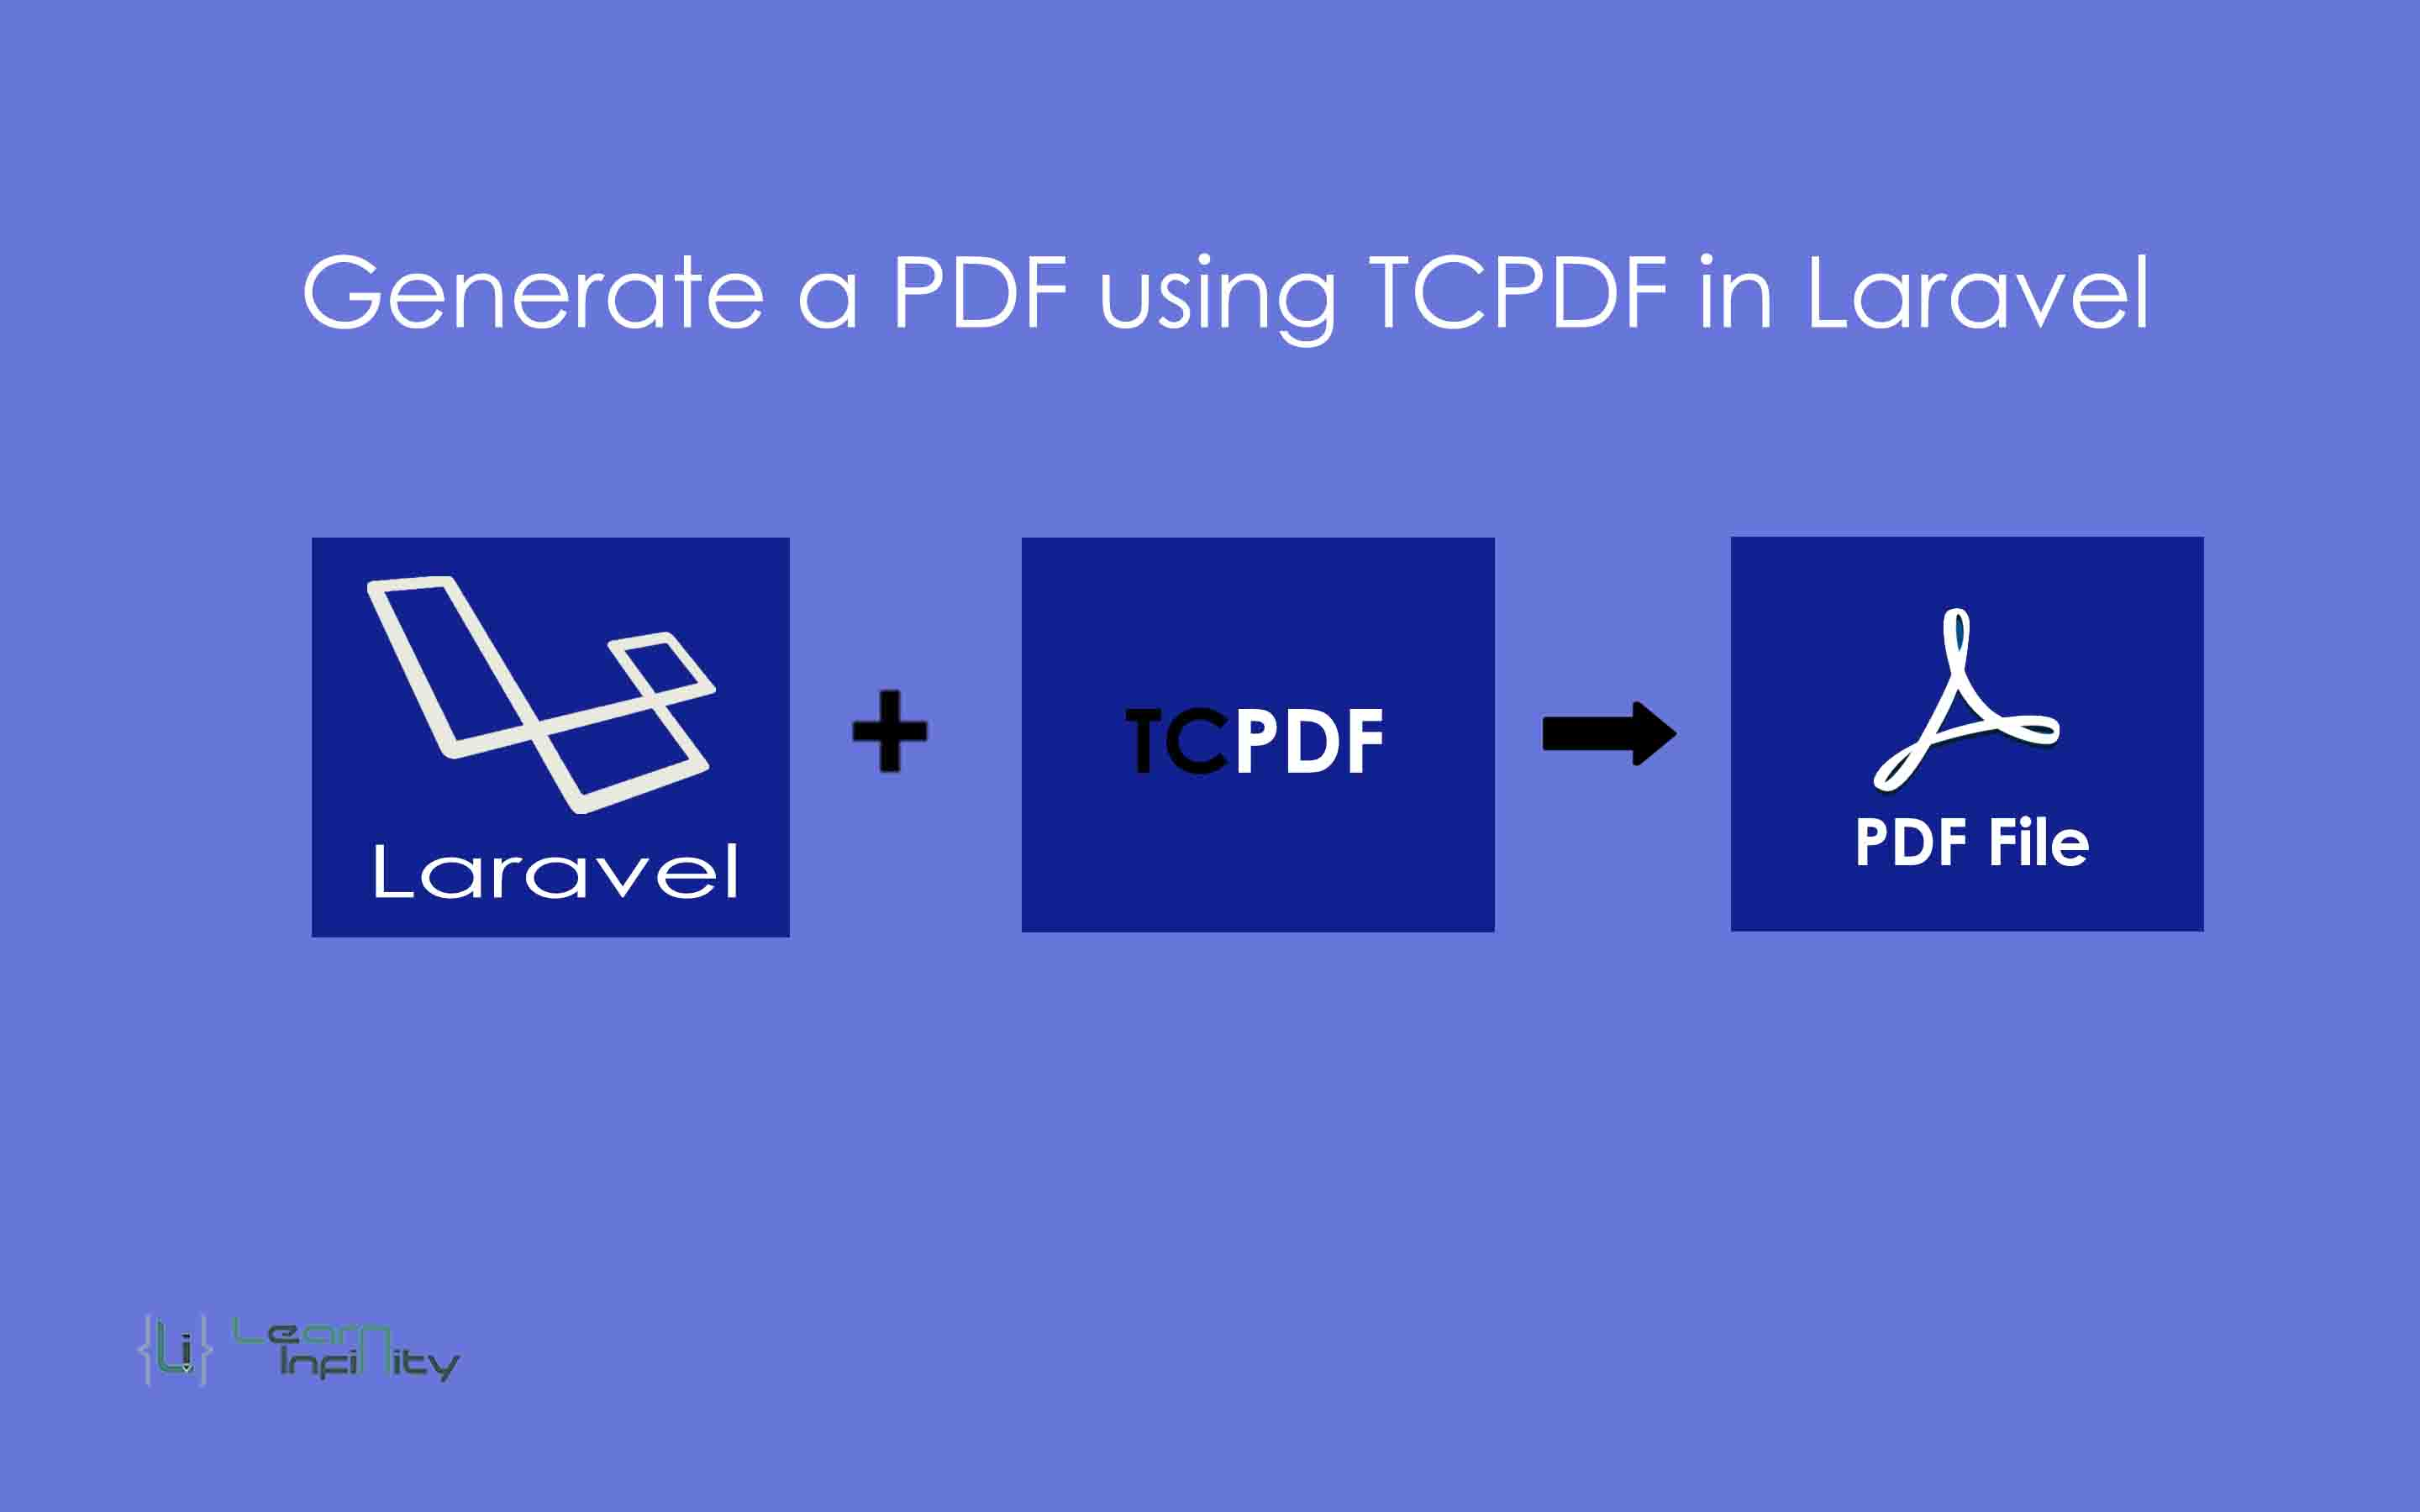 Generate a PDF using TCPDF in laravel